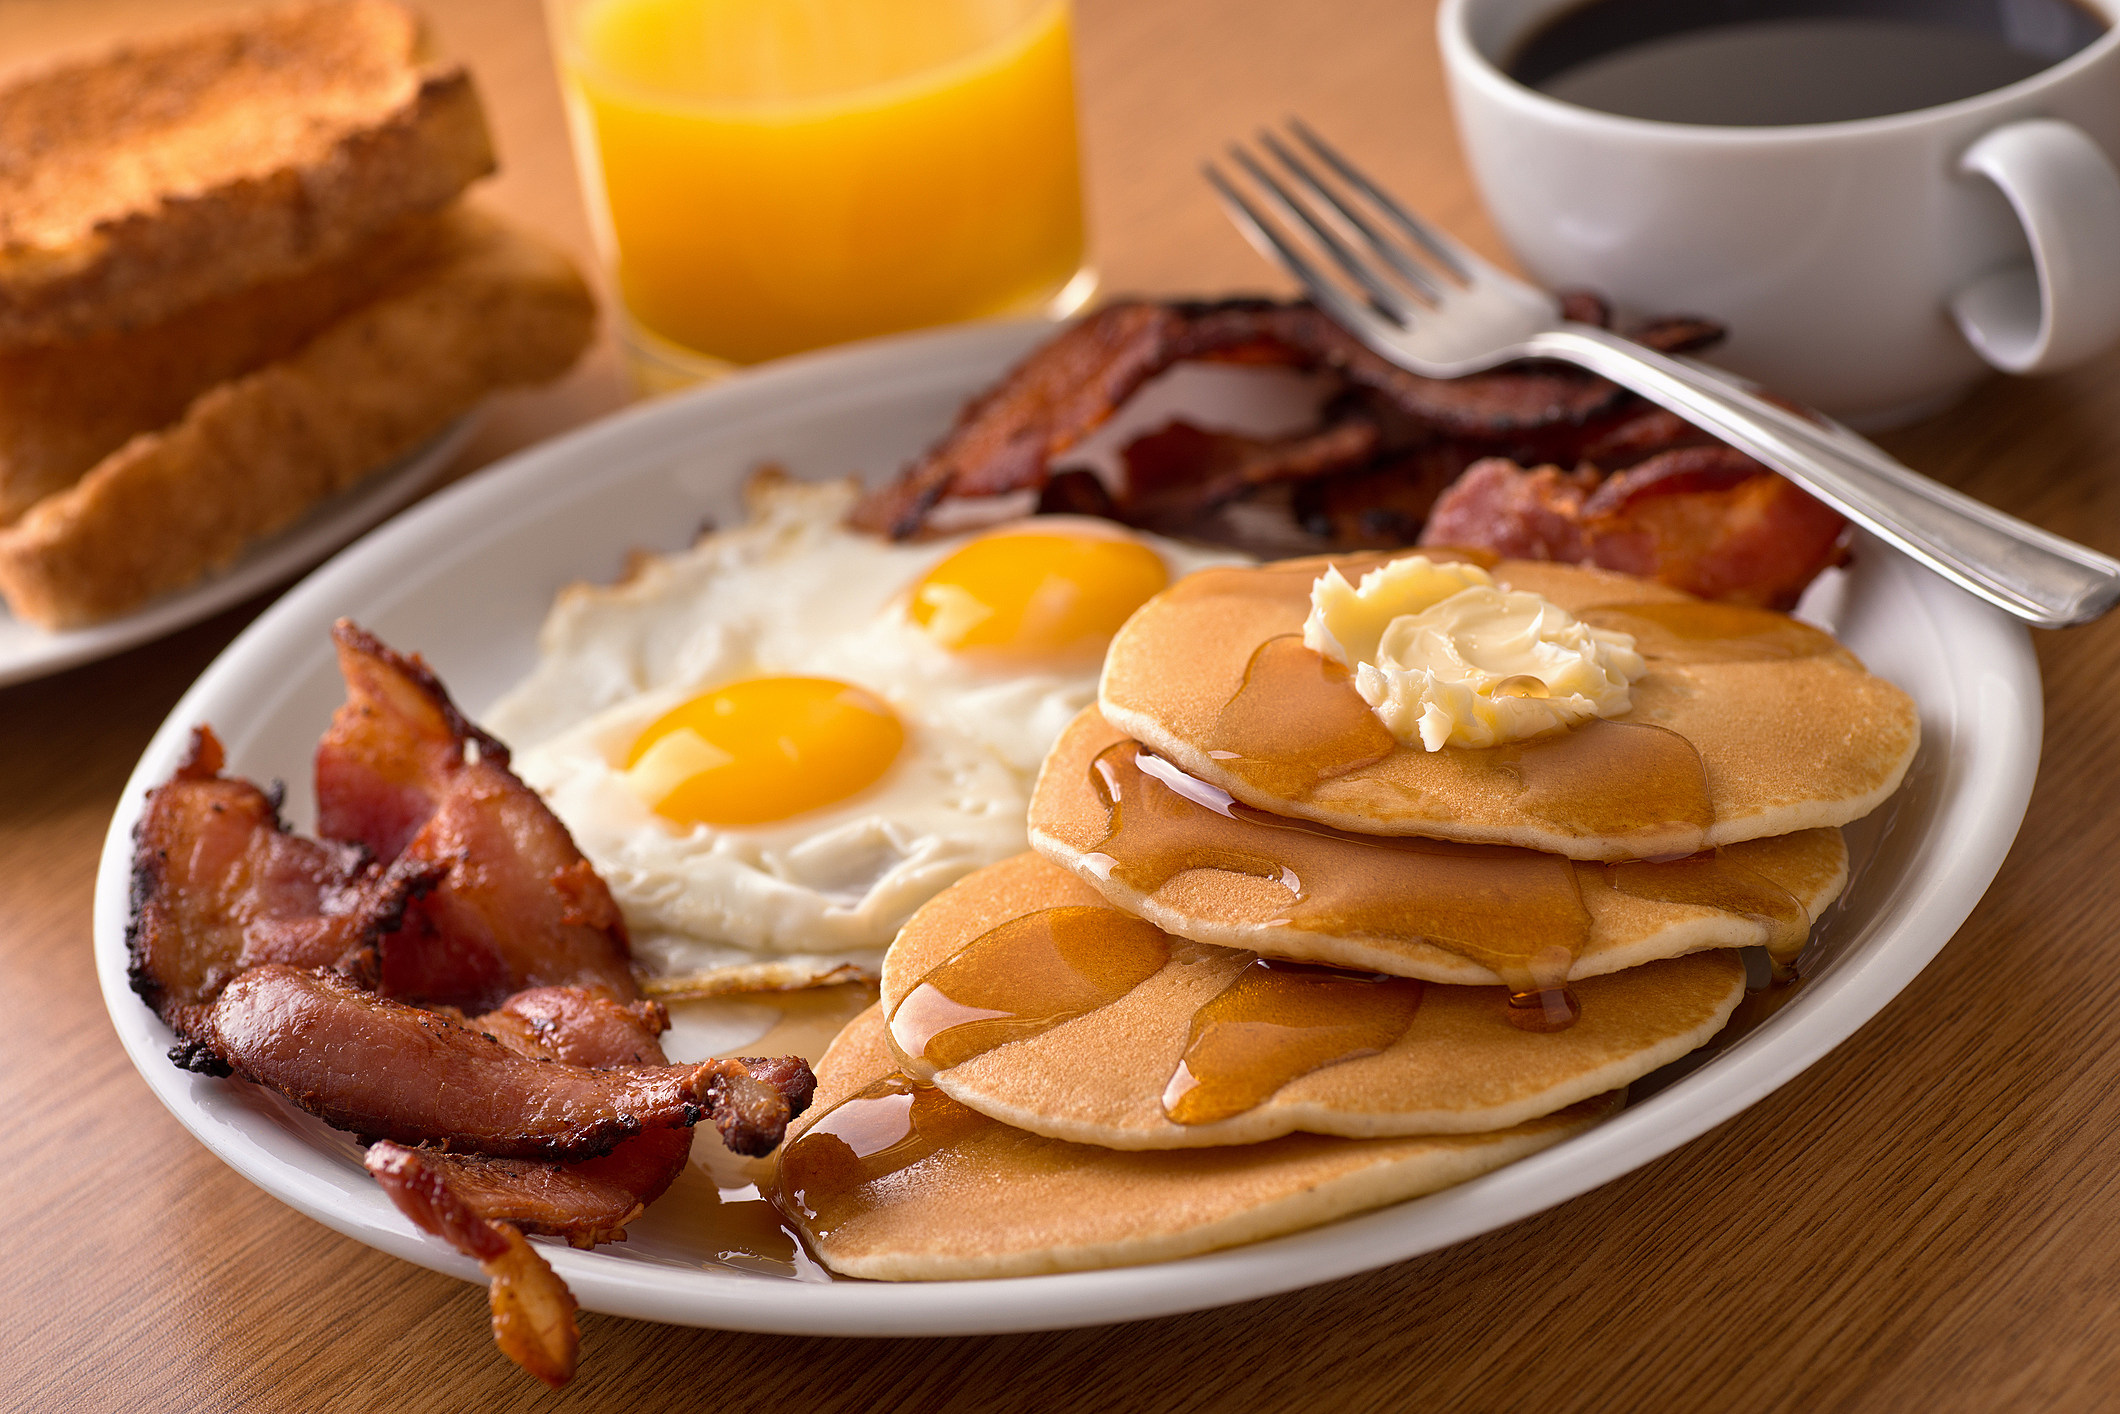 Grand Junction's Best Place to Get Breakfast as Voted By You